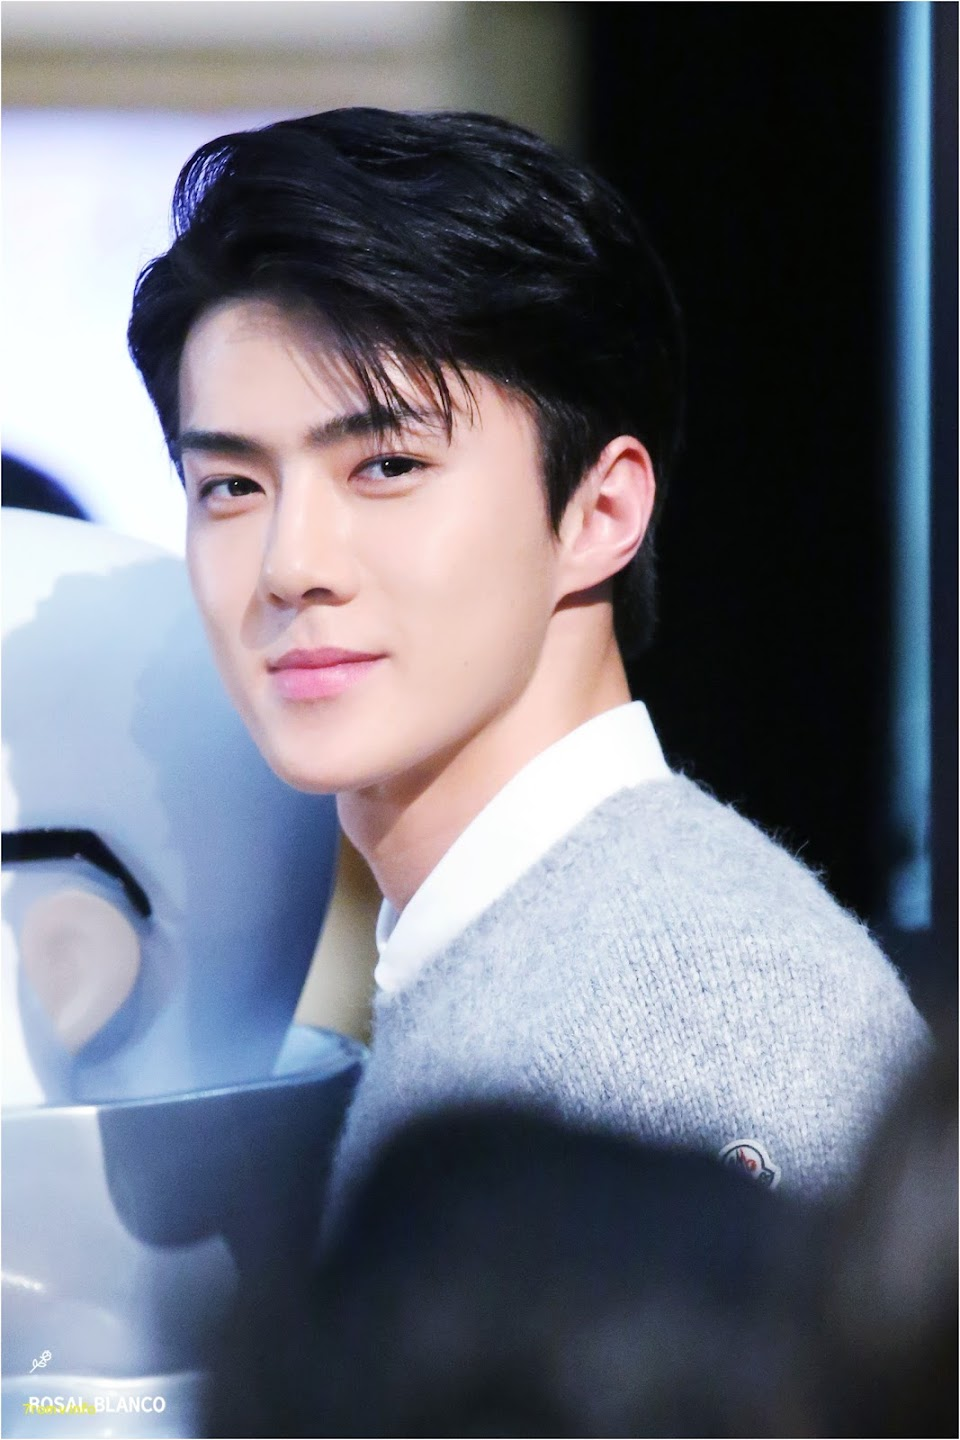 korean haircuts male 2017 Fresh smiling sehun is rare this a picture that should be kept in a